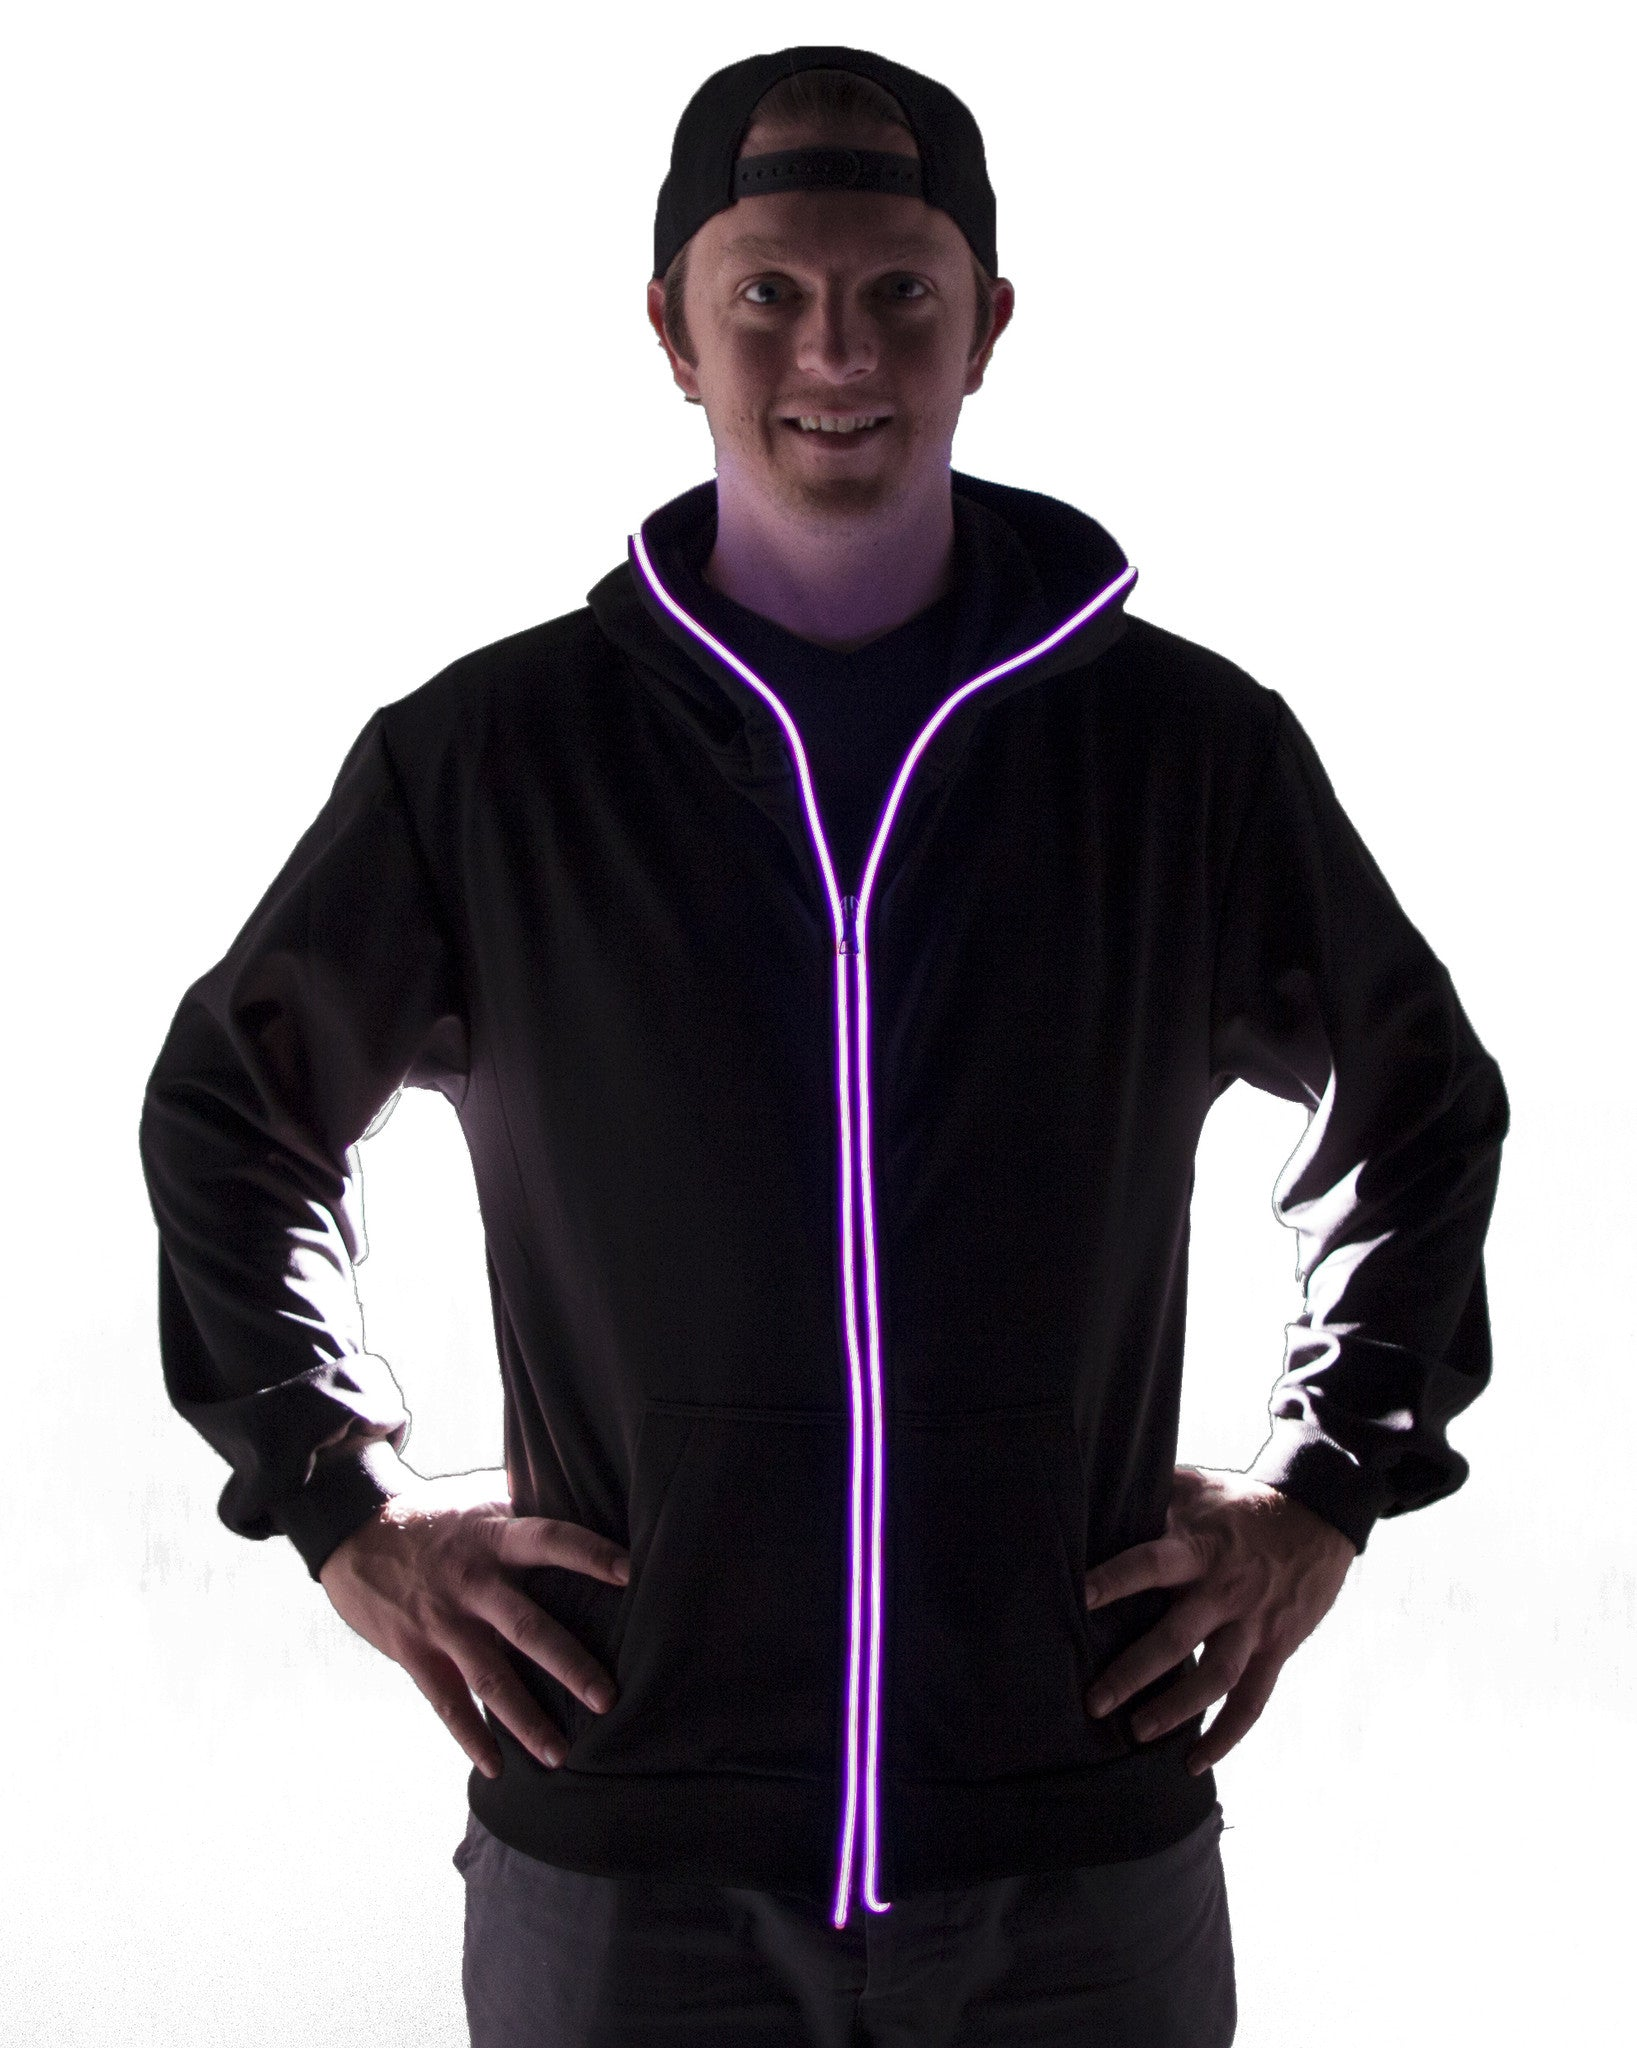 Light Up Hoodie - Pink - Electric Styles | World's Number 1 Light Up Shoe Store - {product_type}} -  - 3